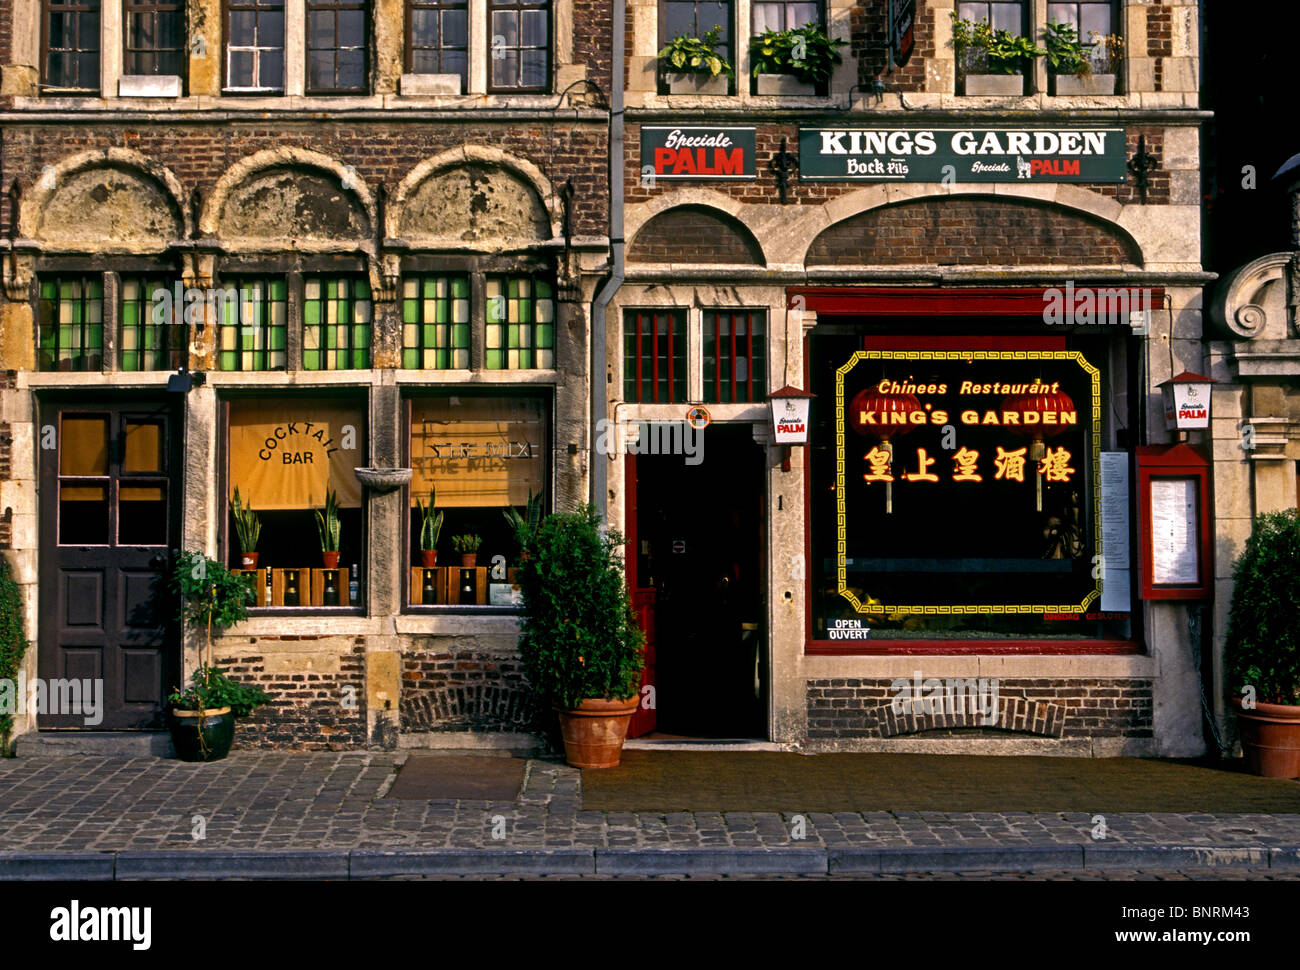 Kings Garden Chinese Restaurant city of Ghent East Flanders Province ...